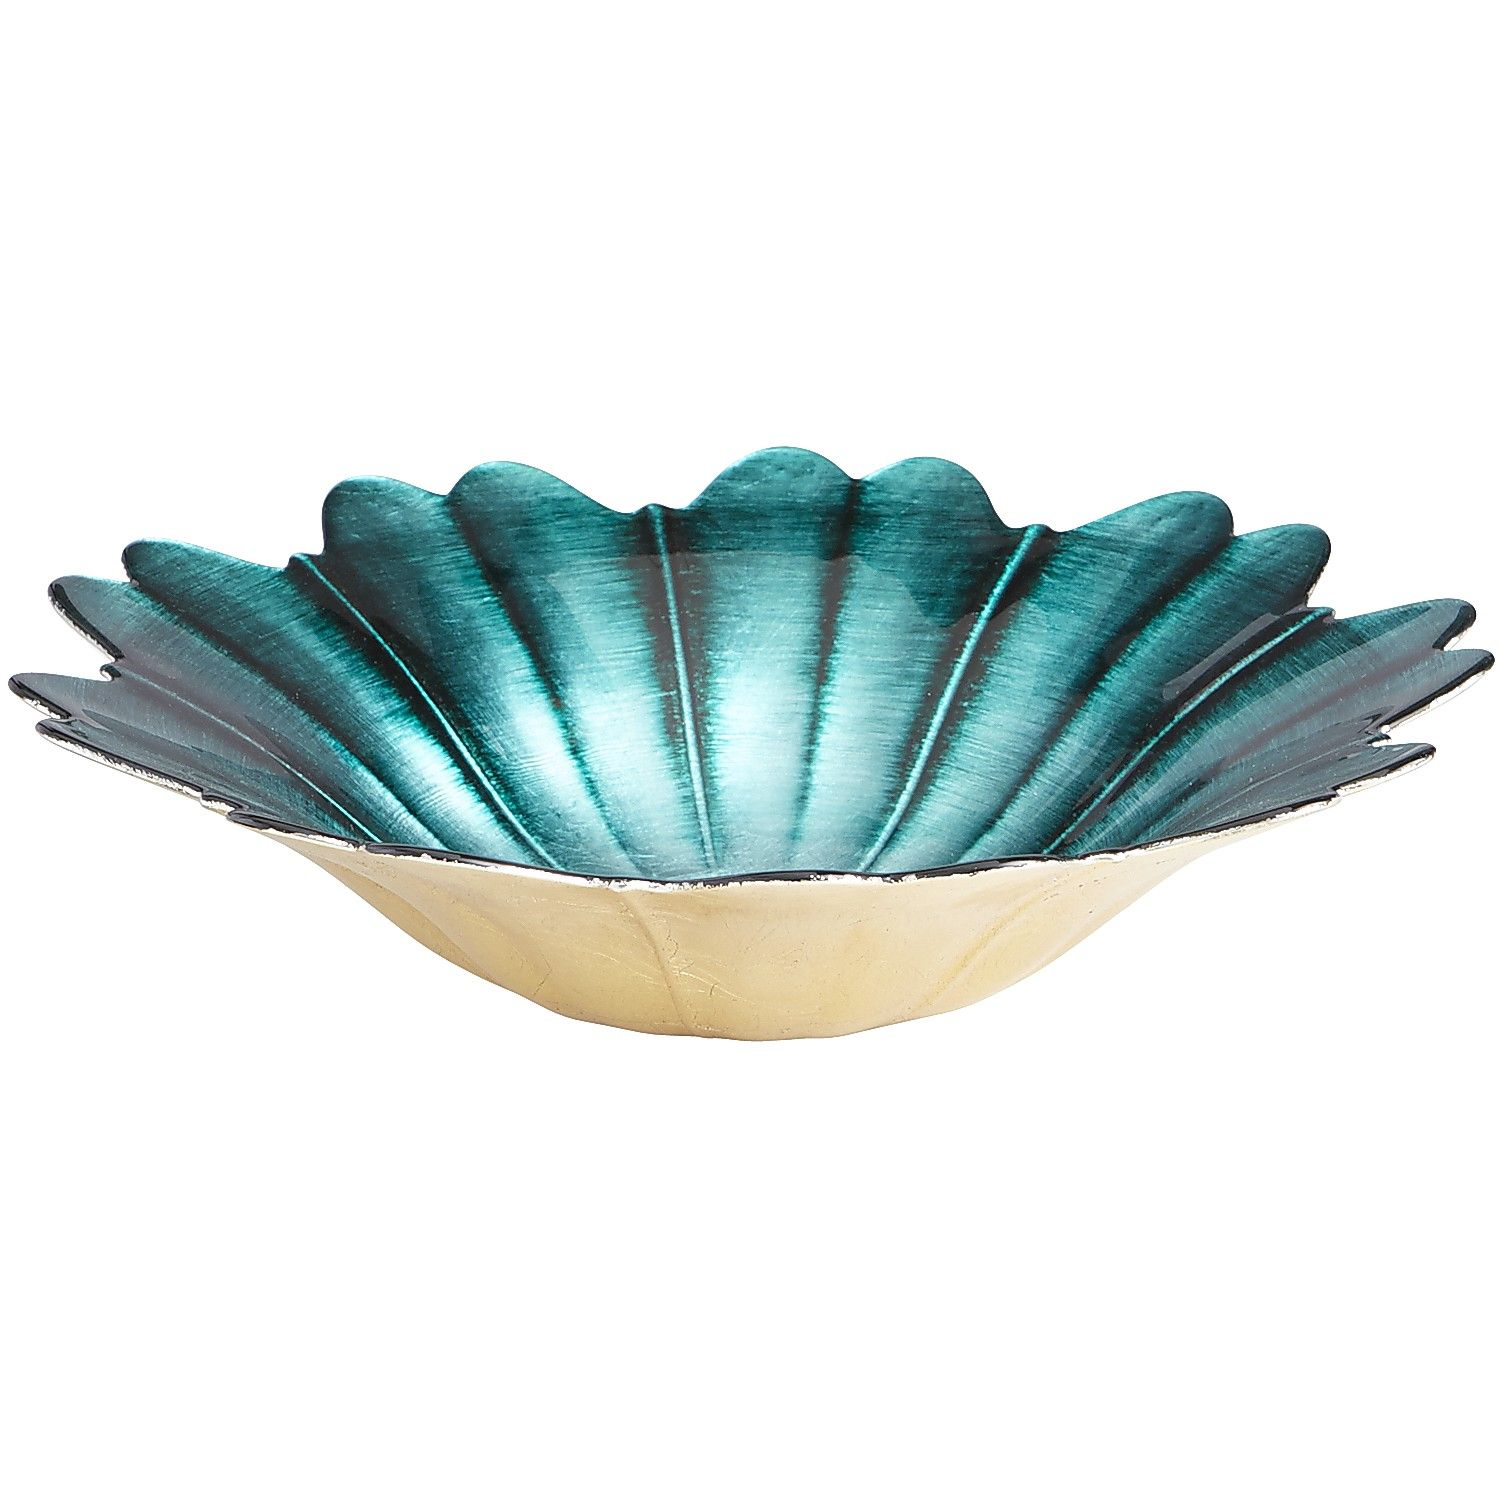 Turquoise and Earth Tone Sparkly Decorative Bowl